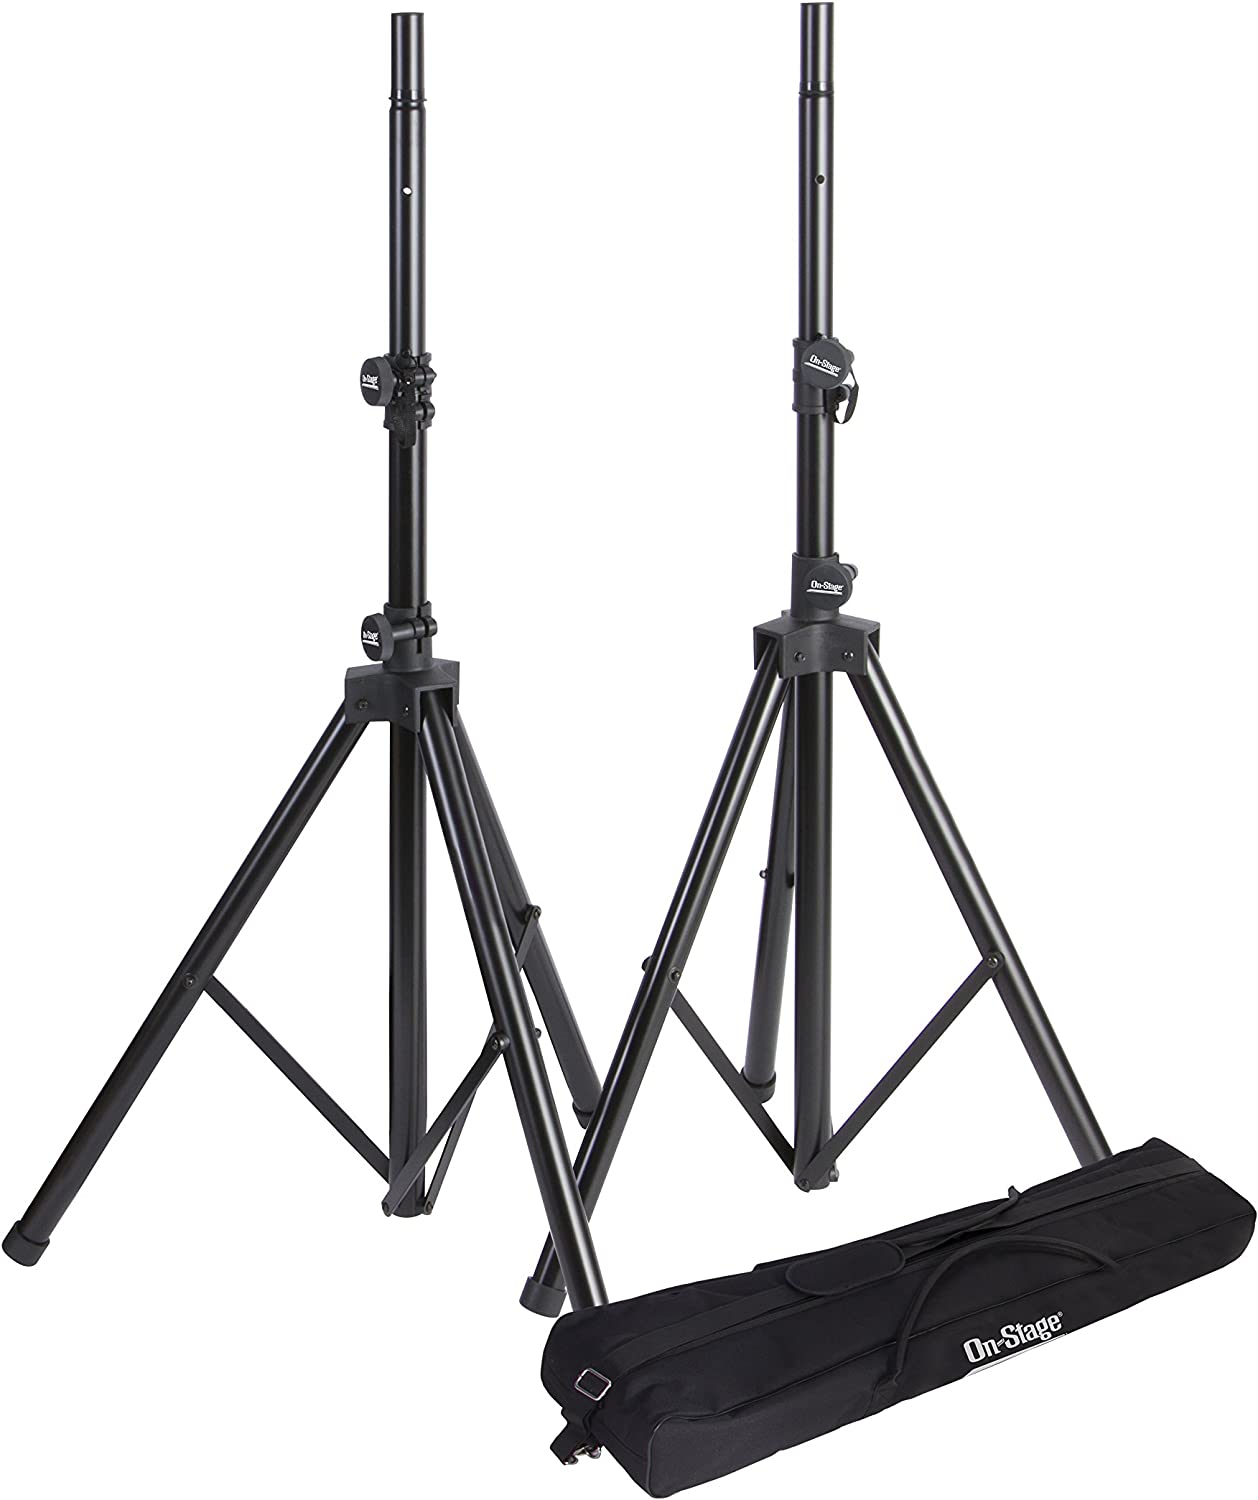 On-Stage SSP9 Tripod Speaker Stand Package with Bag